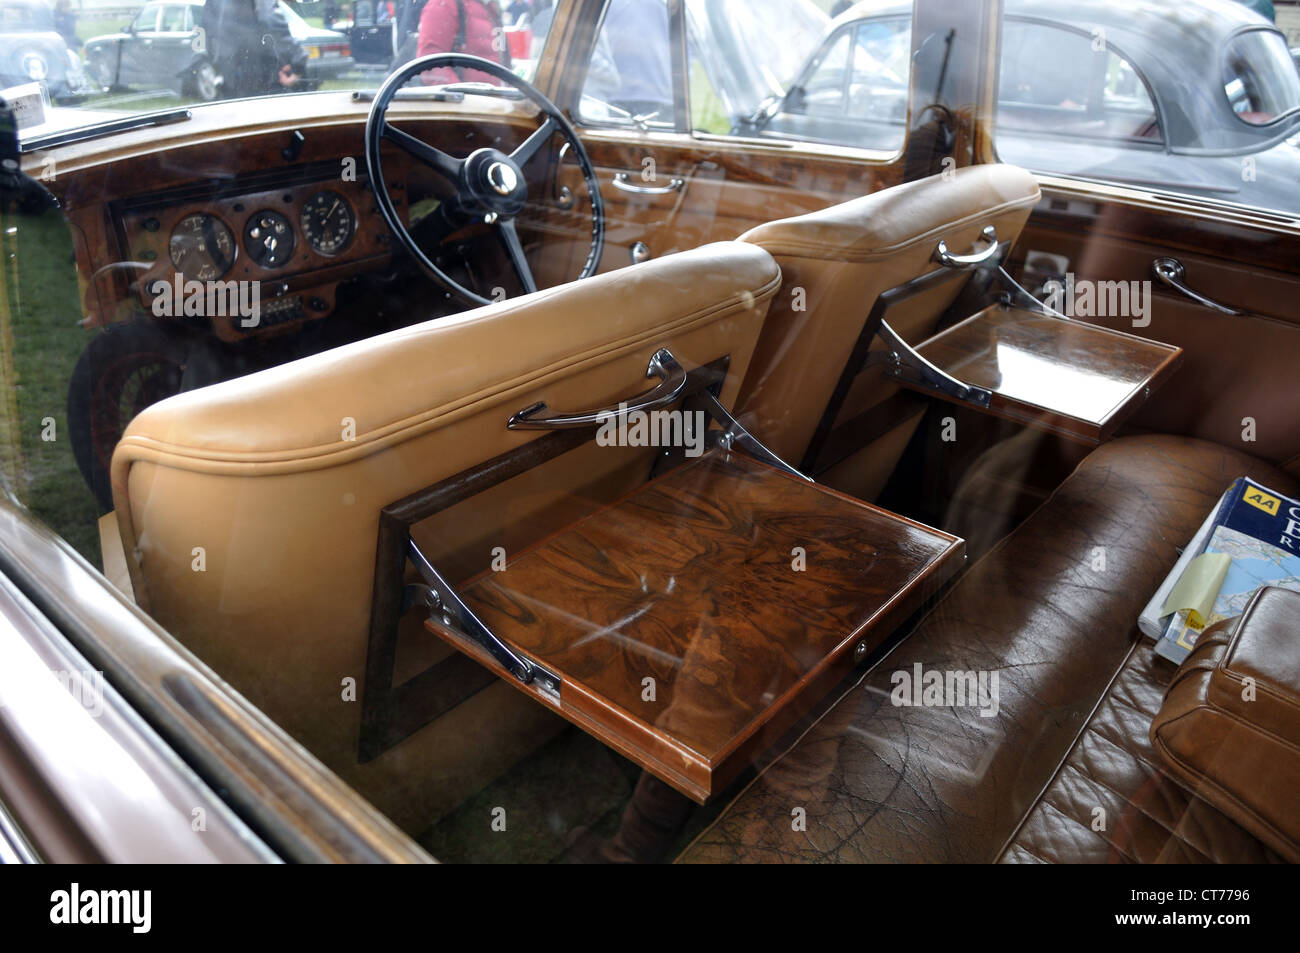 classic bentley leather interior walnut picnic tables vintage car stock photo 49331890 alamy. Black Bedroom Furniture Sets. Home Design Ideas